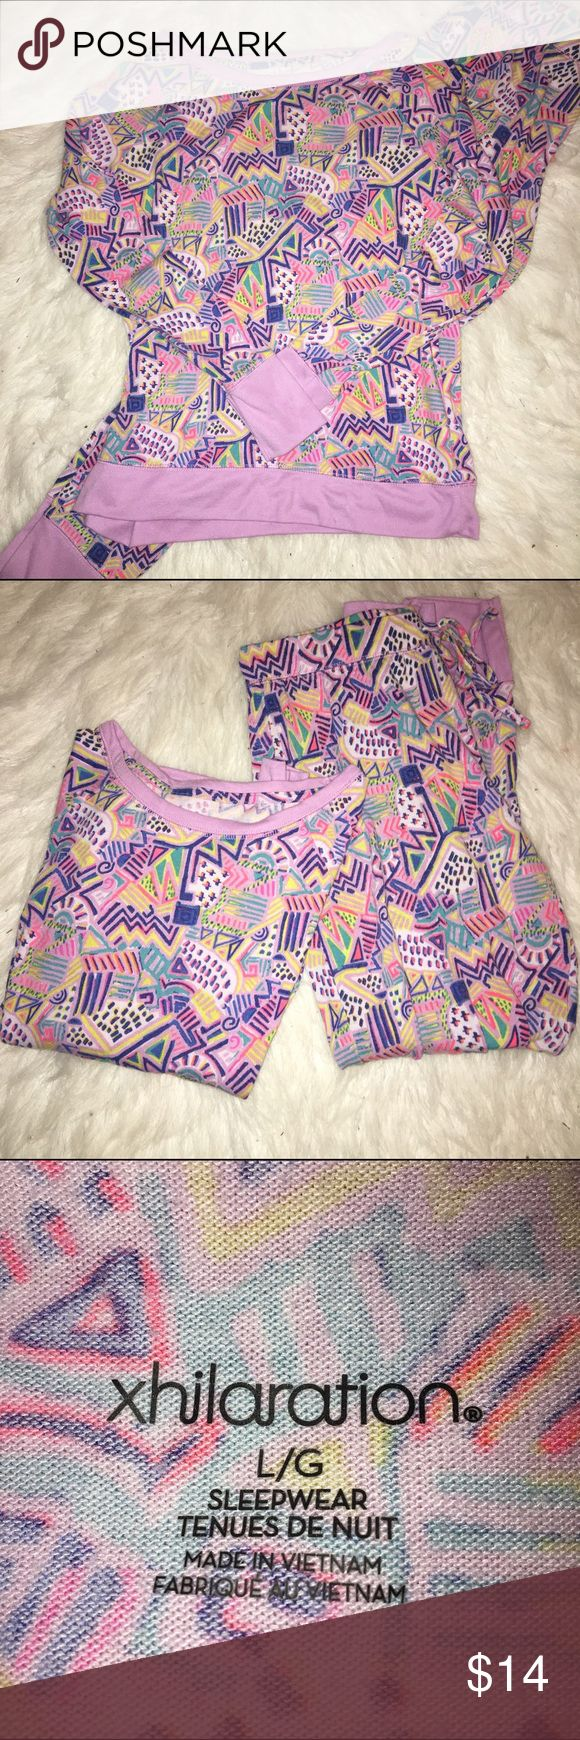 Ladies' Pajama Set 💜 These pajamas are so soft and cozy! Knit material with stretch still in good condition. Xhilaration Intimates & Sleepwear Pajamas